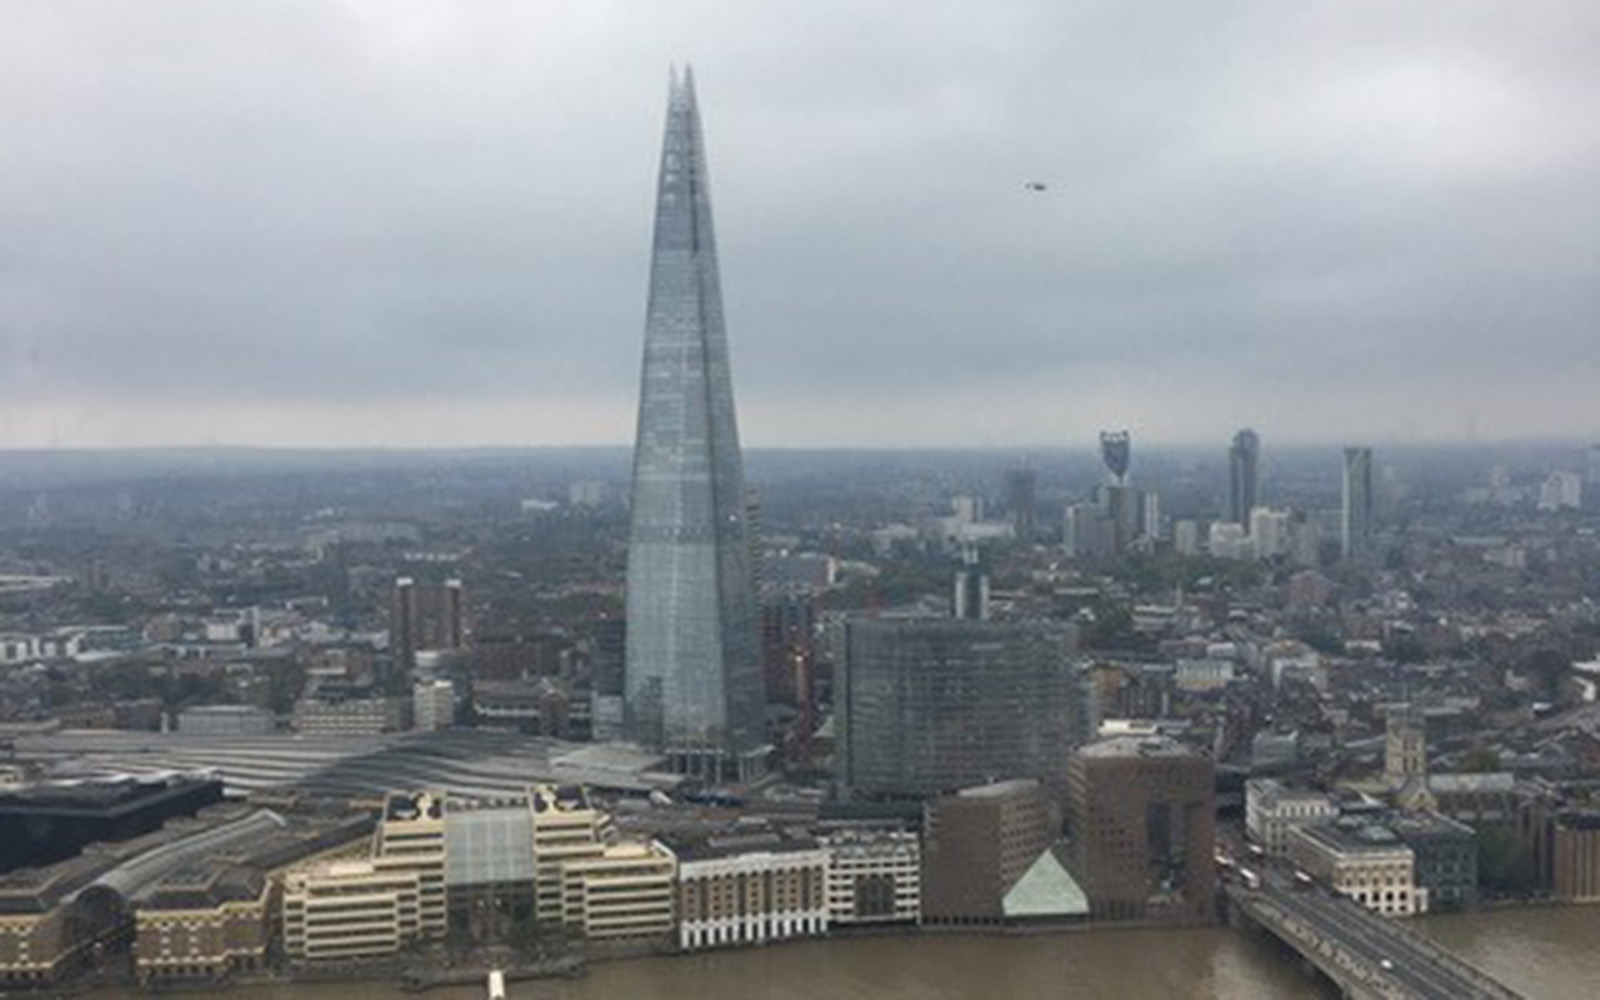 """The Shard"" as viewed from the Sky Garden in London (Brendan Mulcahey/UConn School of Business)"